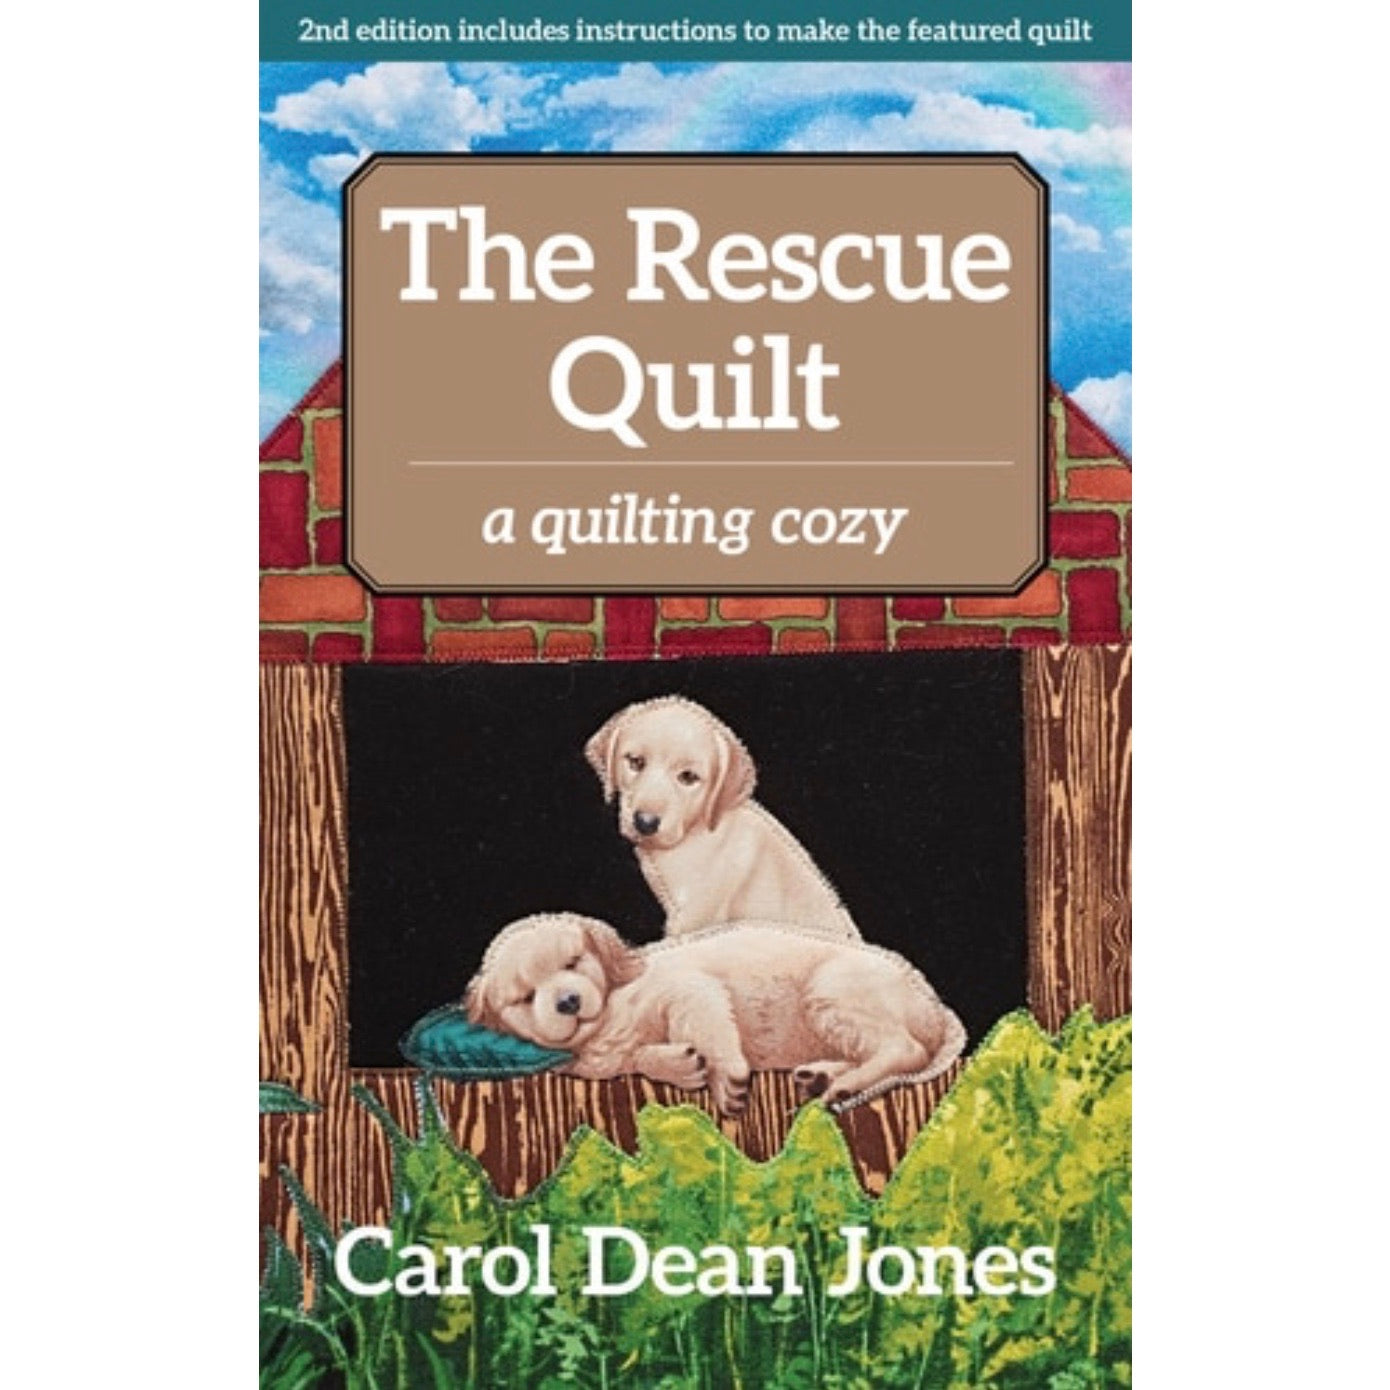 The Rescue Quilt - Book 7 - Carol Dean Jones